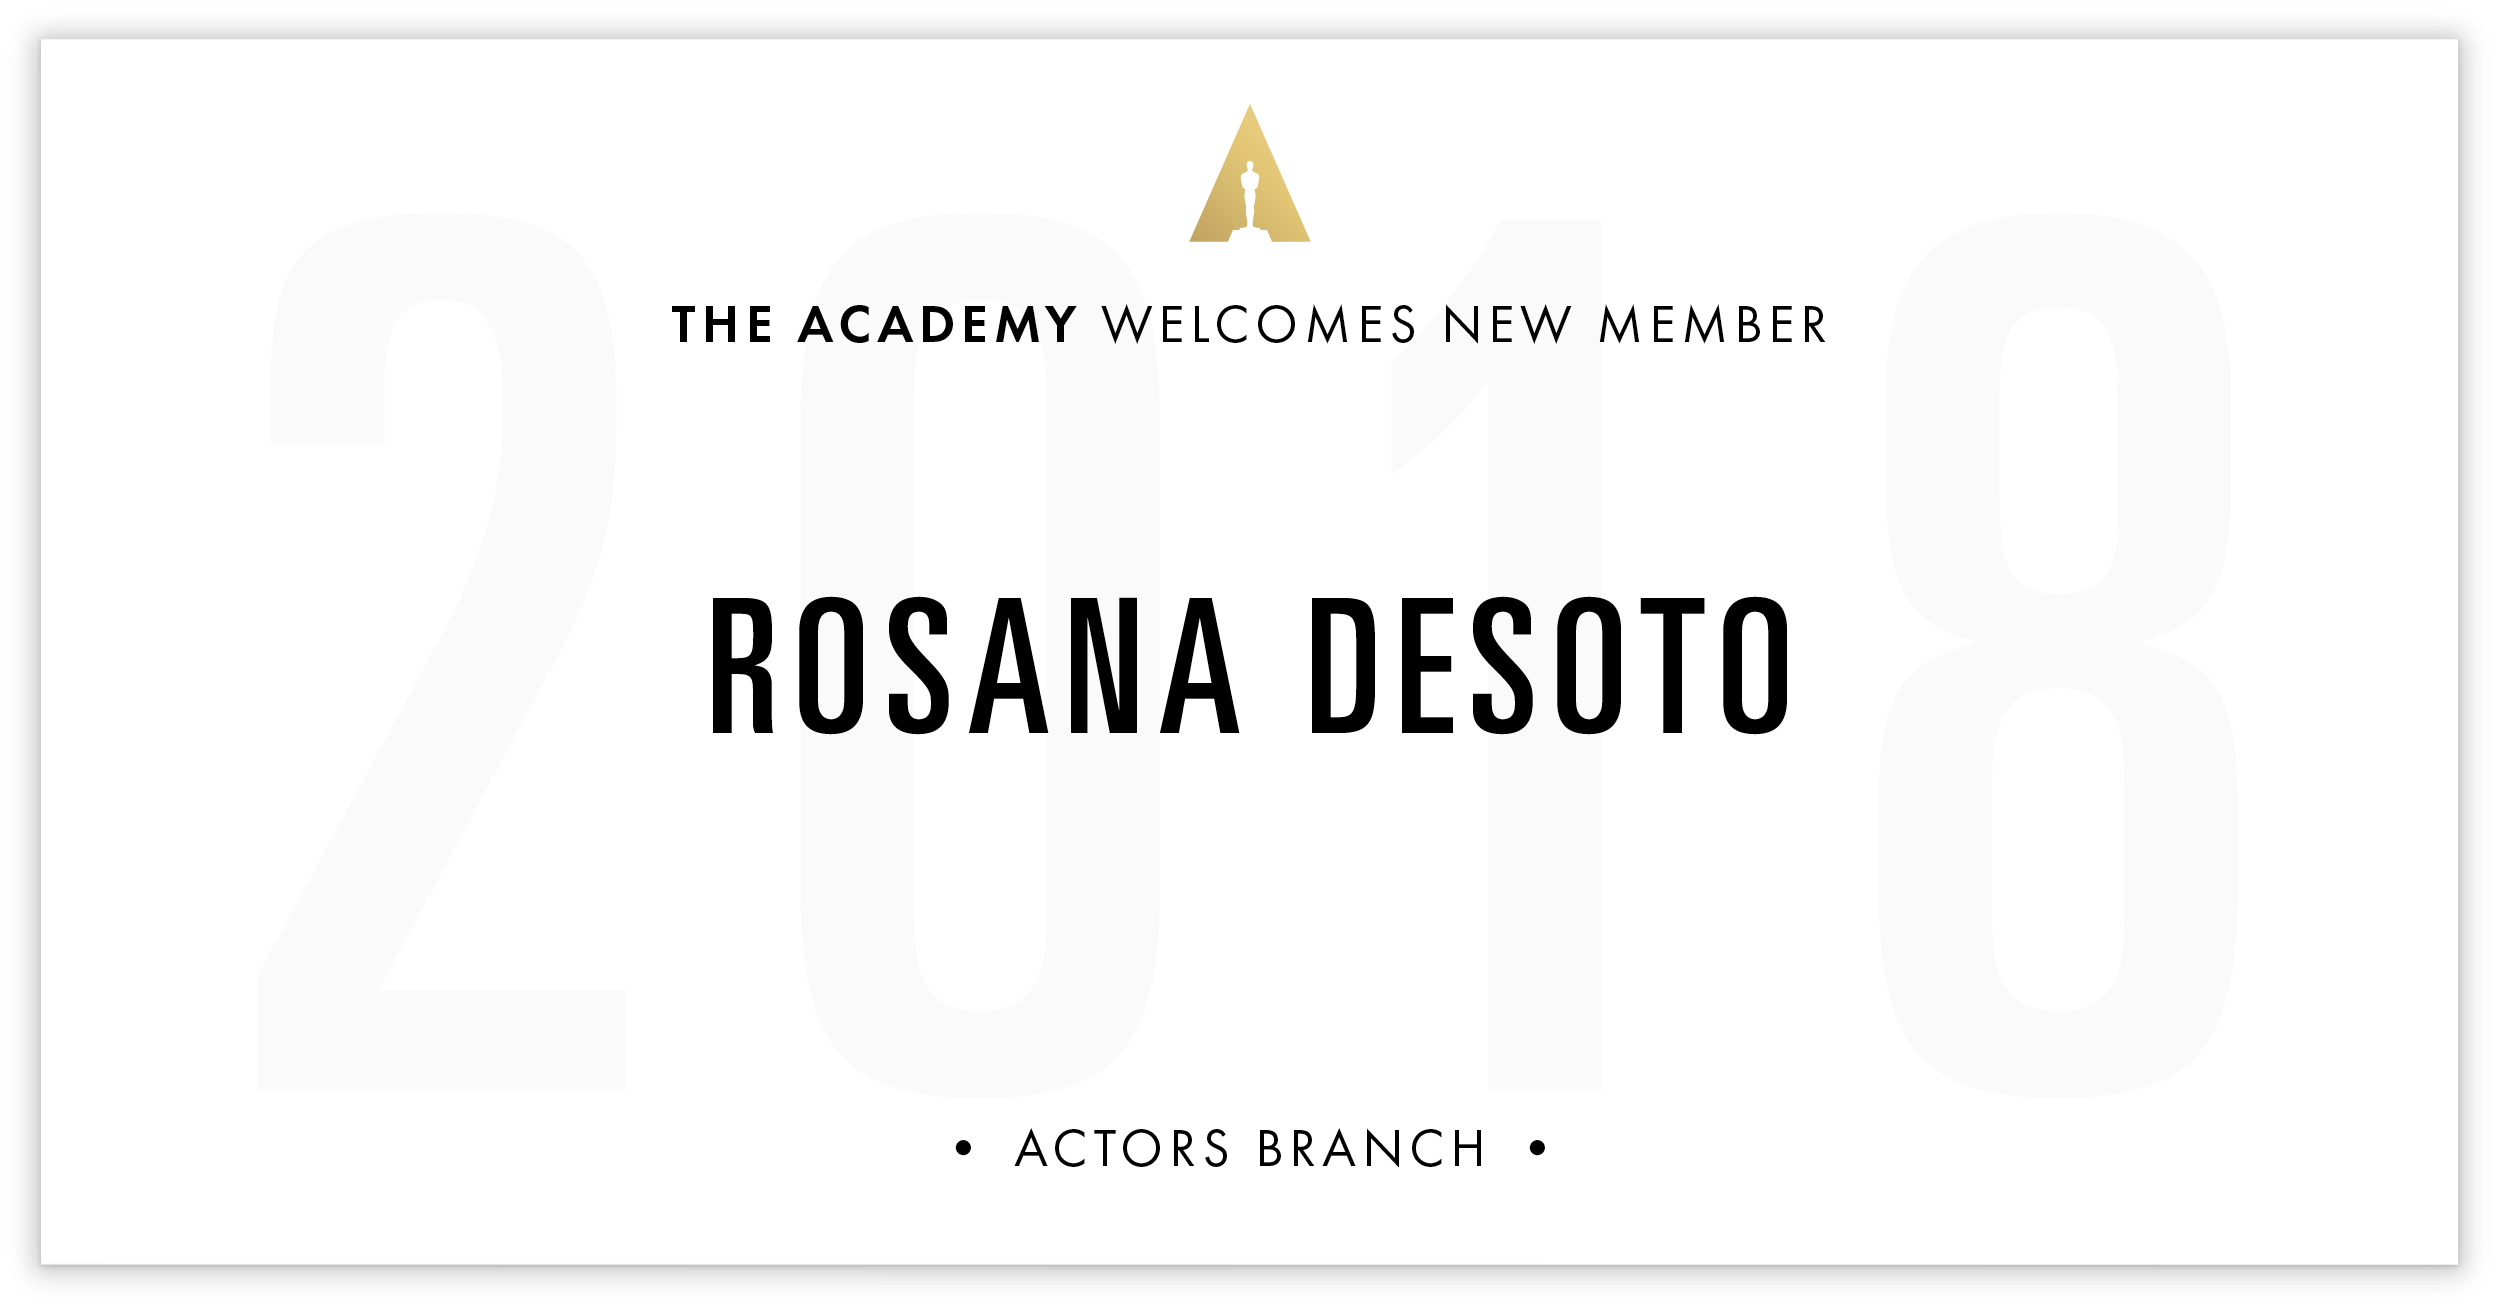 Rosana DeSoto is invited!